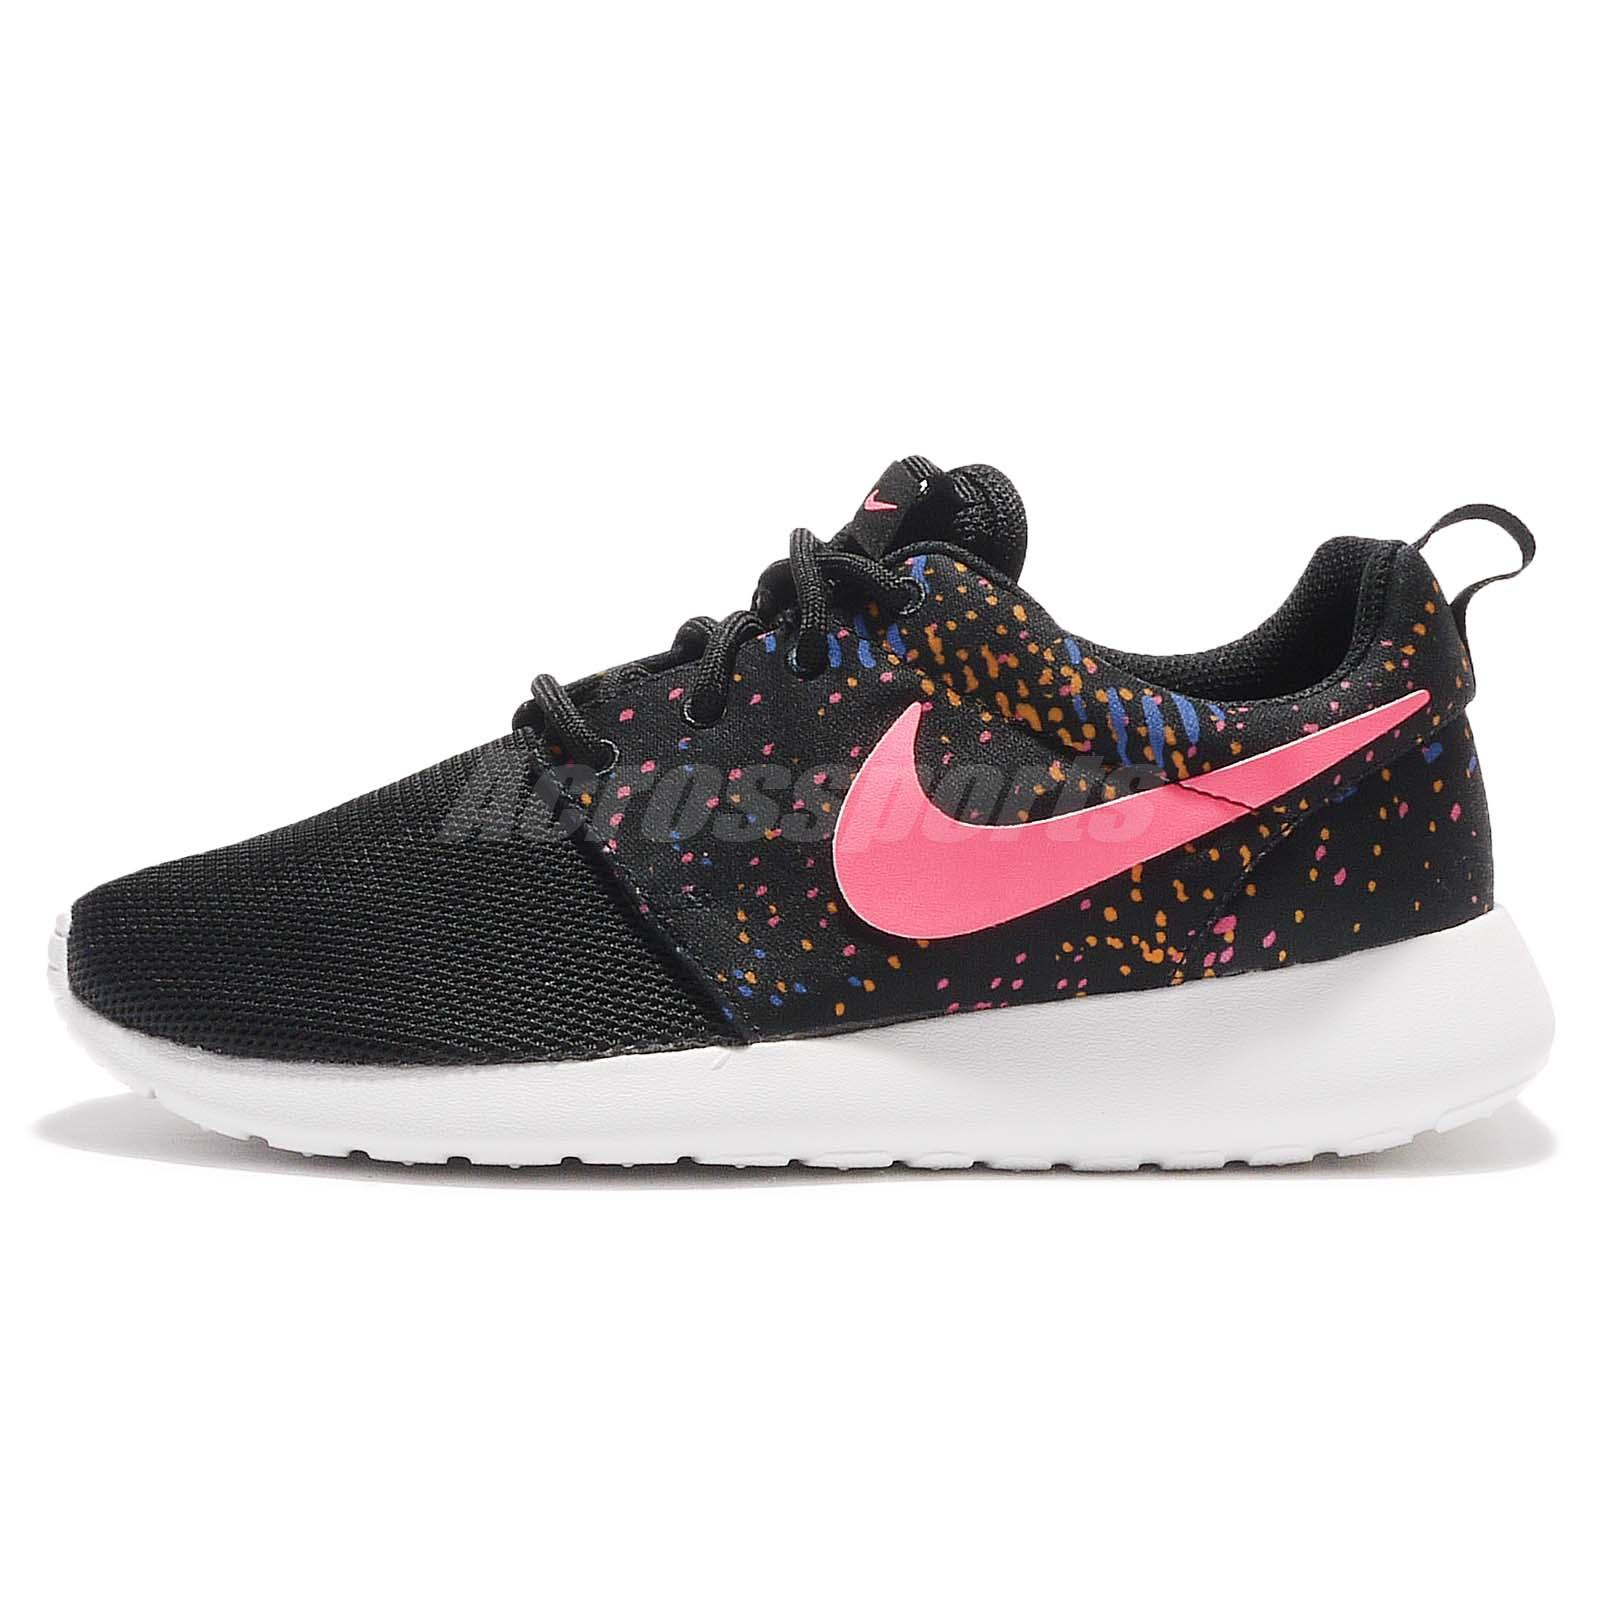 wmns nike roshe one print black pink womens running shoes